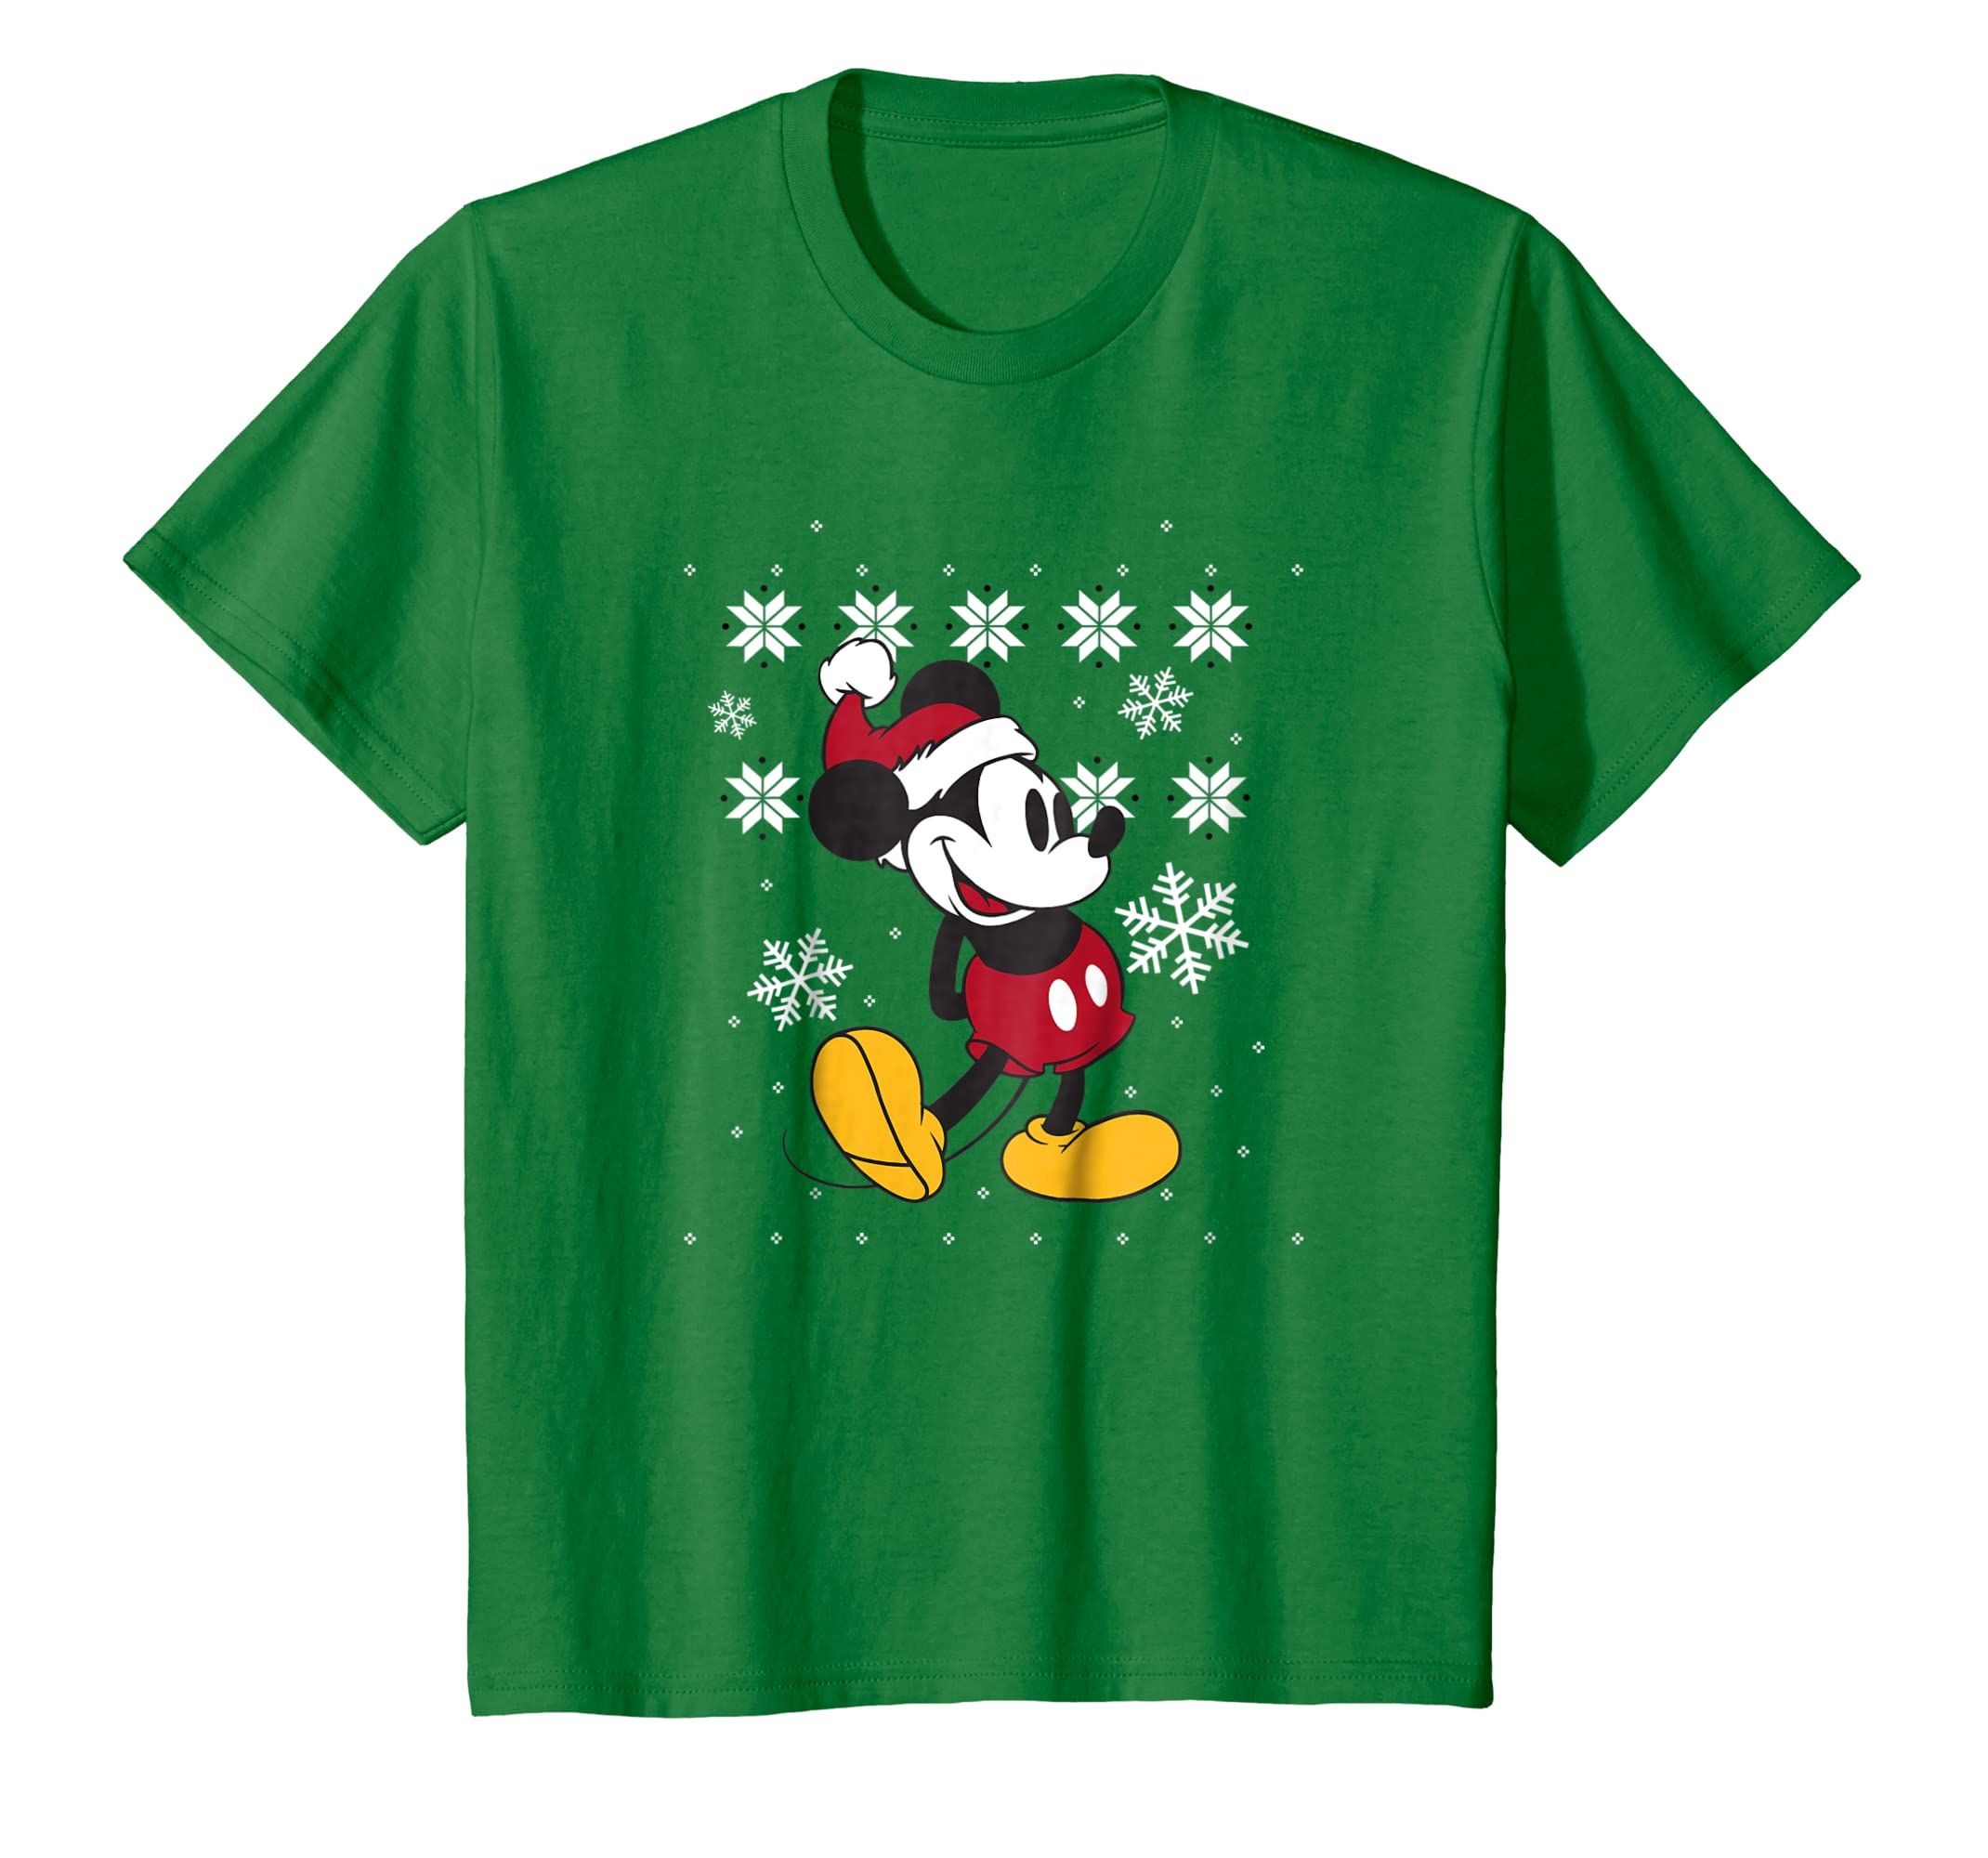 a0db5ca2e57 Amazon.com  Disney Faux Ugly Christmas Sweater Mickey Mouse T Shirt   Clothing